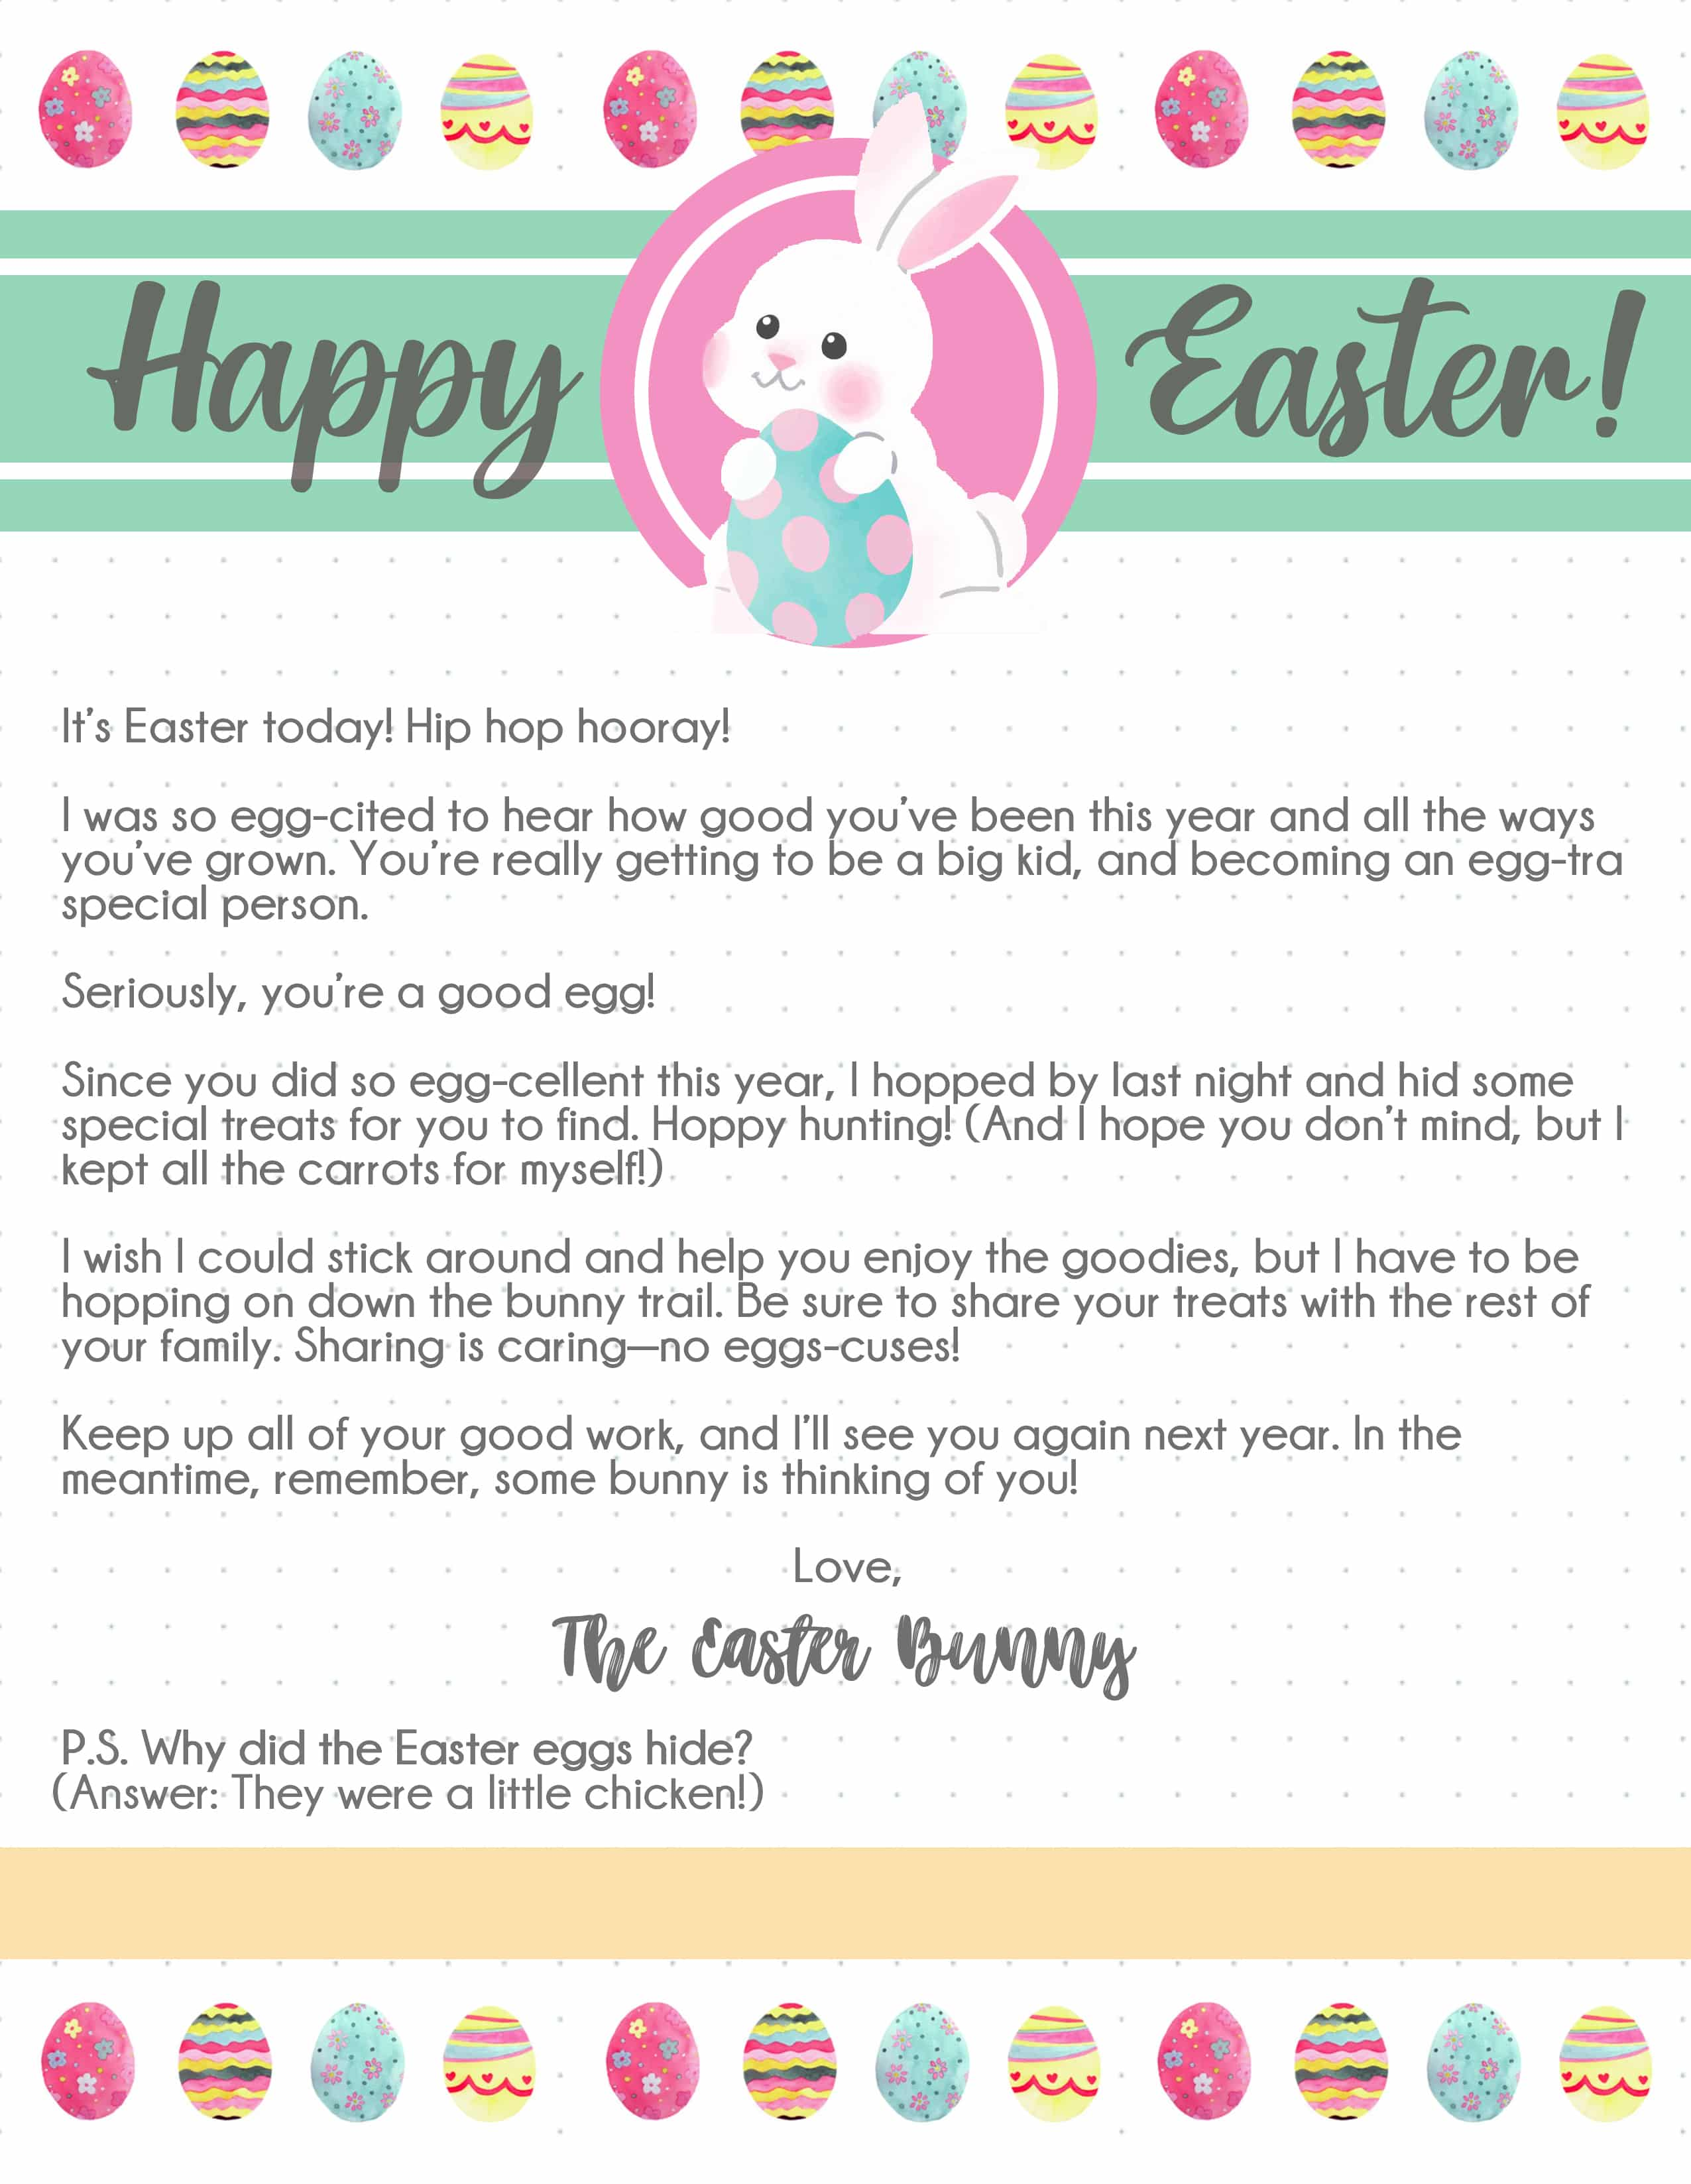 This free printable Easter bunny letter is an adorable way for the Easter bunny to tell your kids how proud he is of their hard work this year.